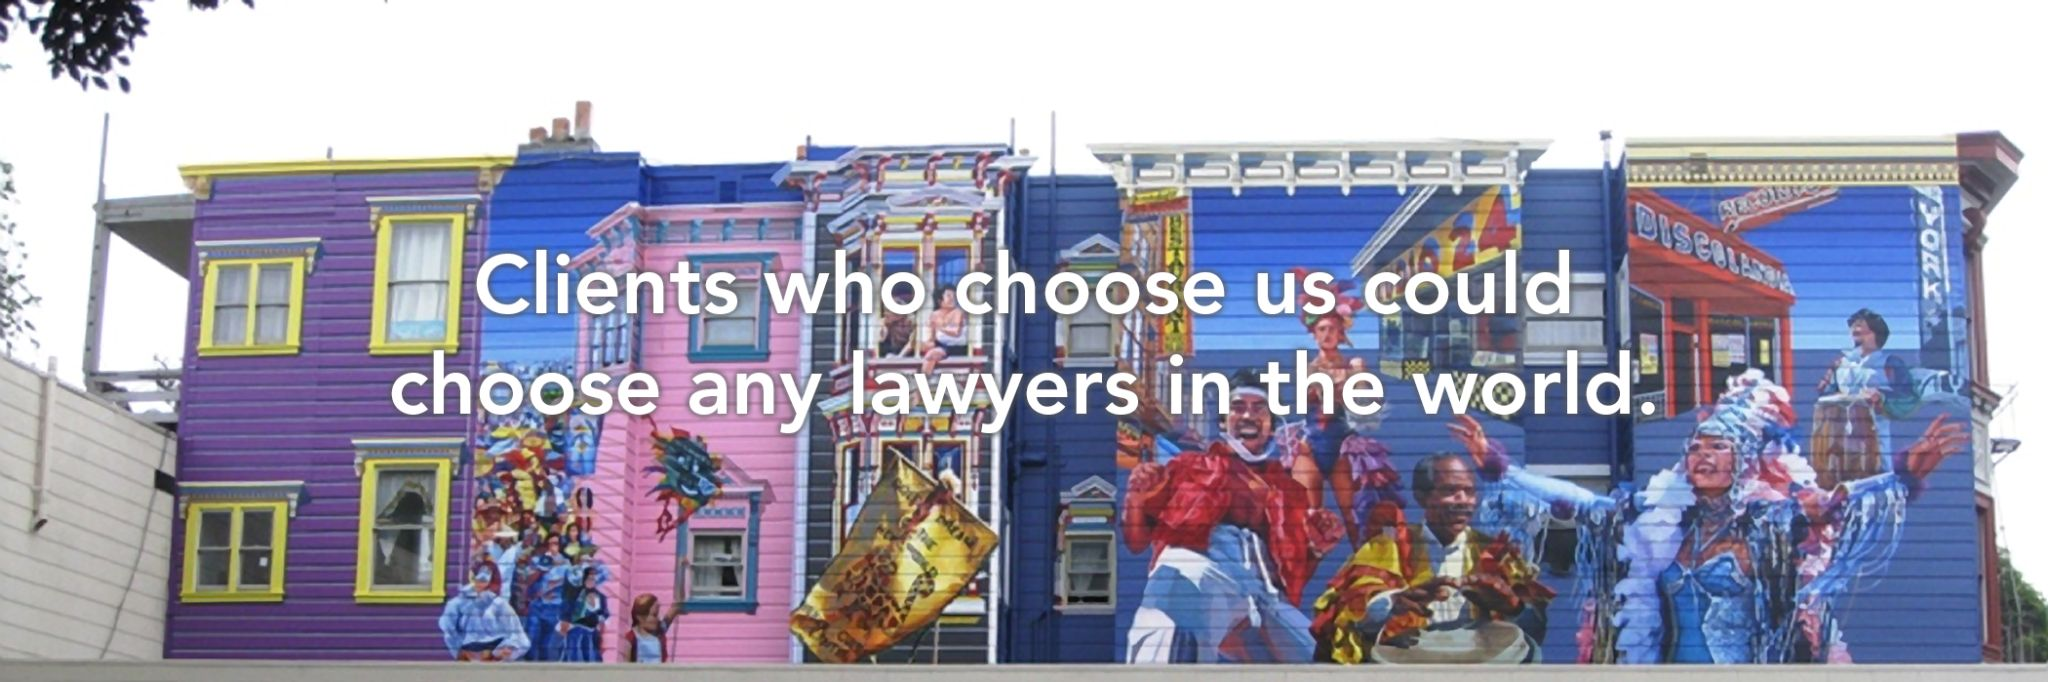 Clients who choose us could choose any lawyers in the world.